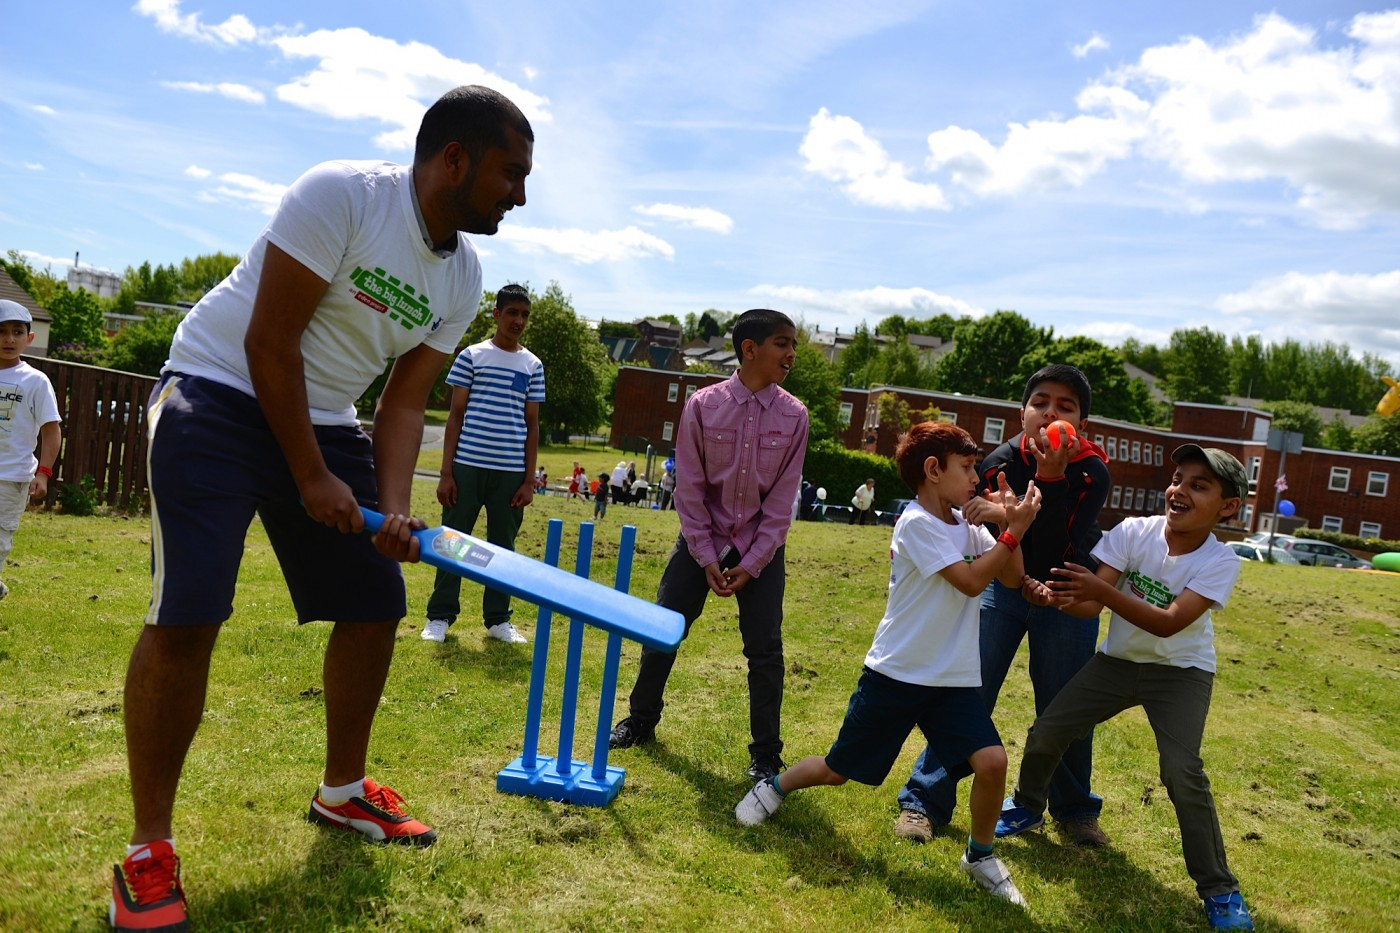 Photo of adults and children enjoying outdoor games in a community space